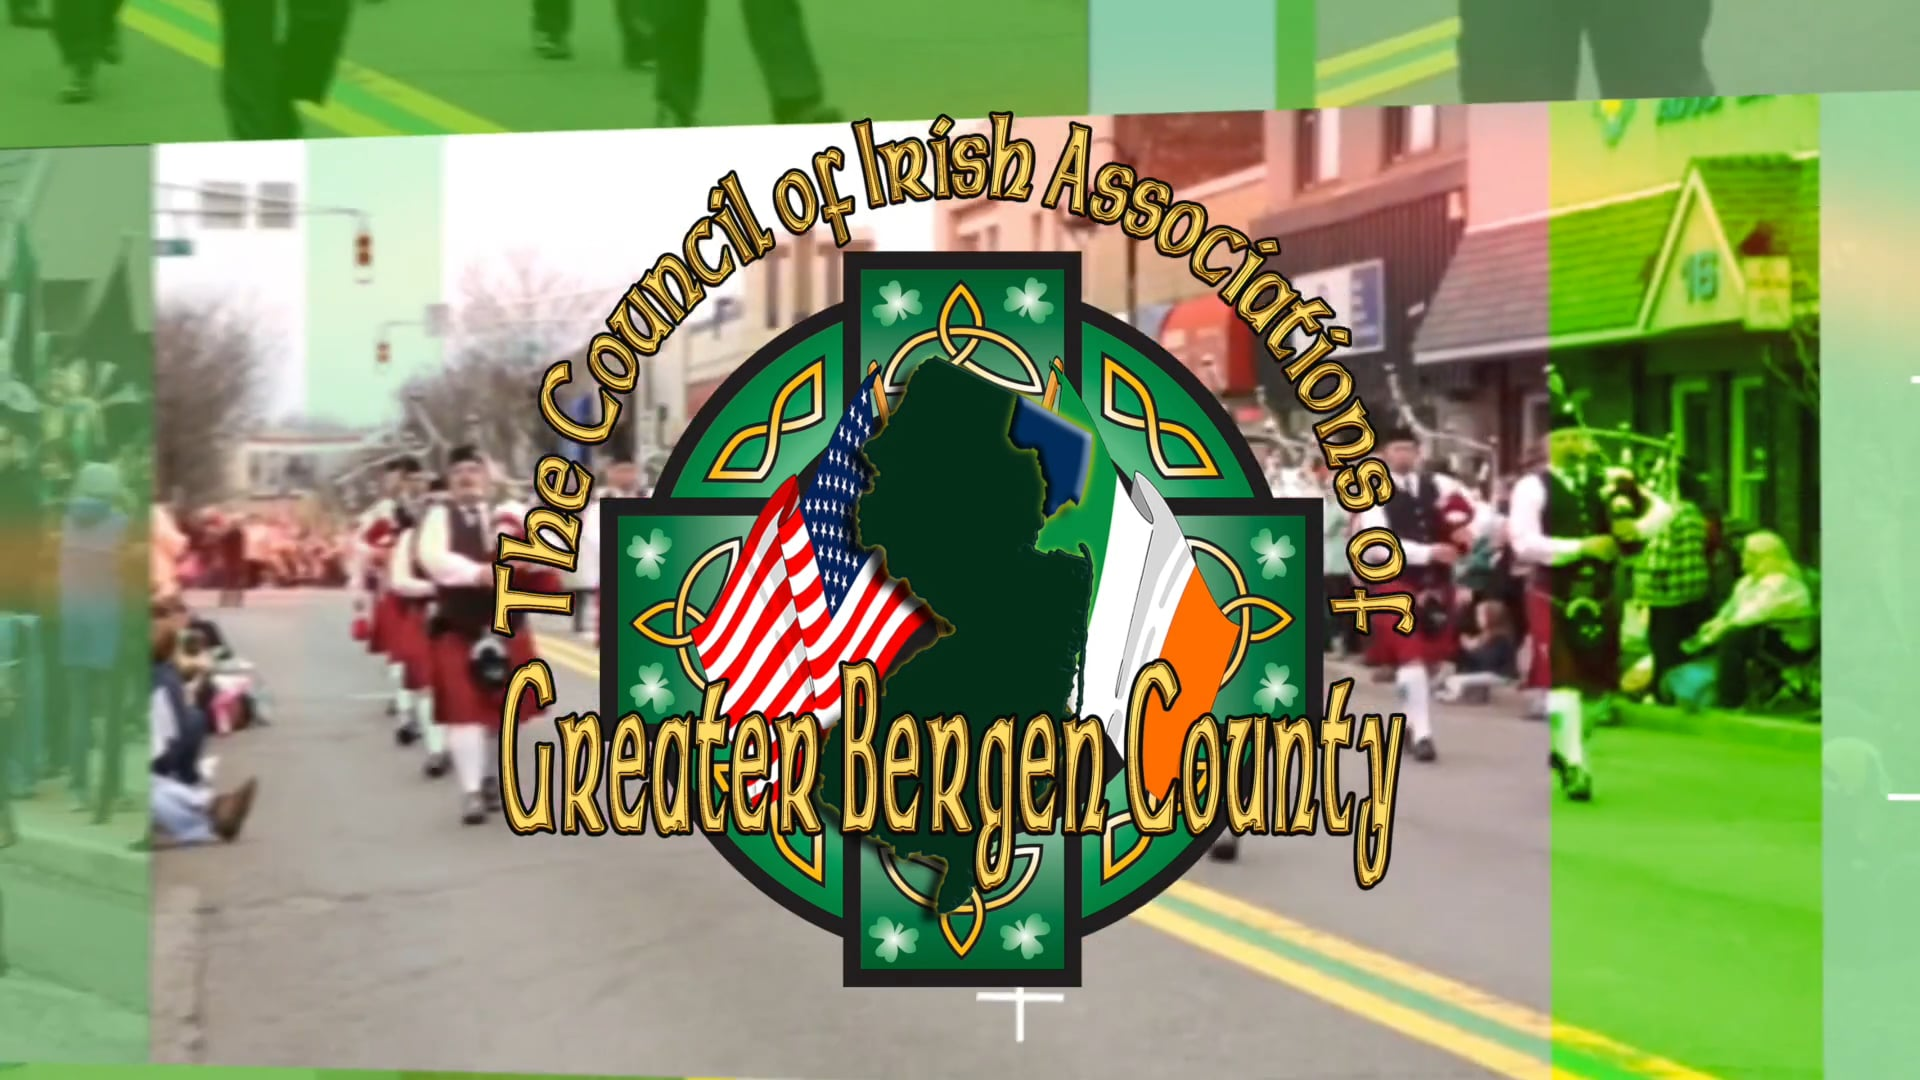 Bergen County Virtual St. Patrick's Day Parade Promo - 2021